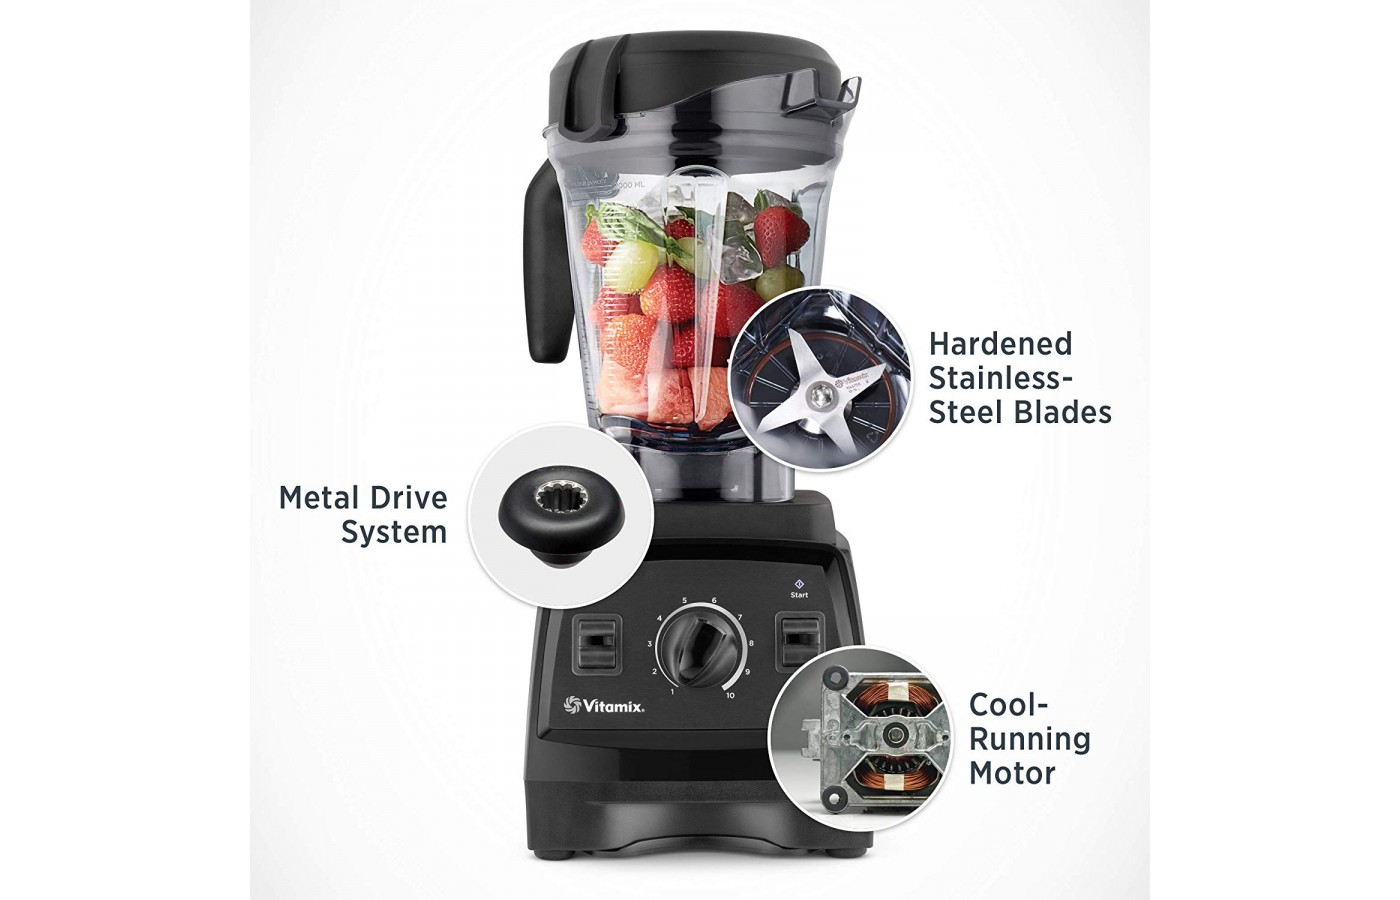 The Blendtec 625 is a powerful and stylish blender designed for home kitchens.